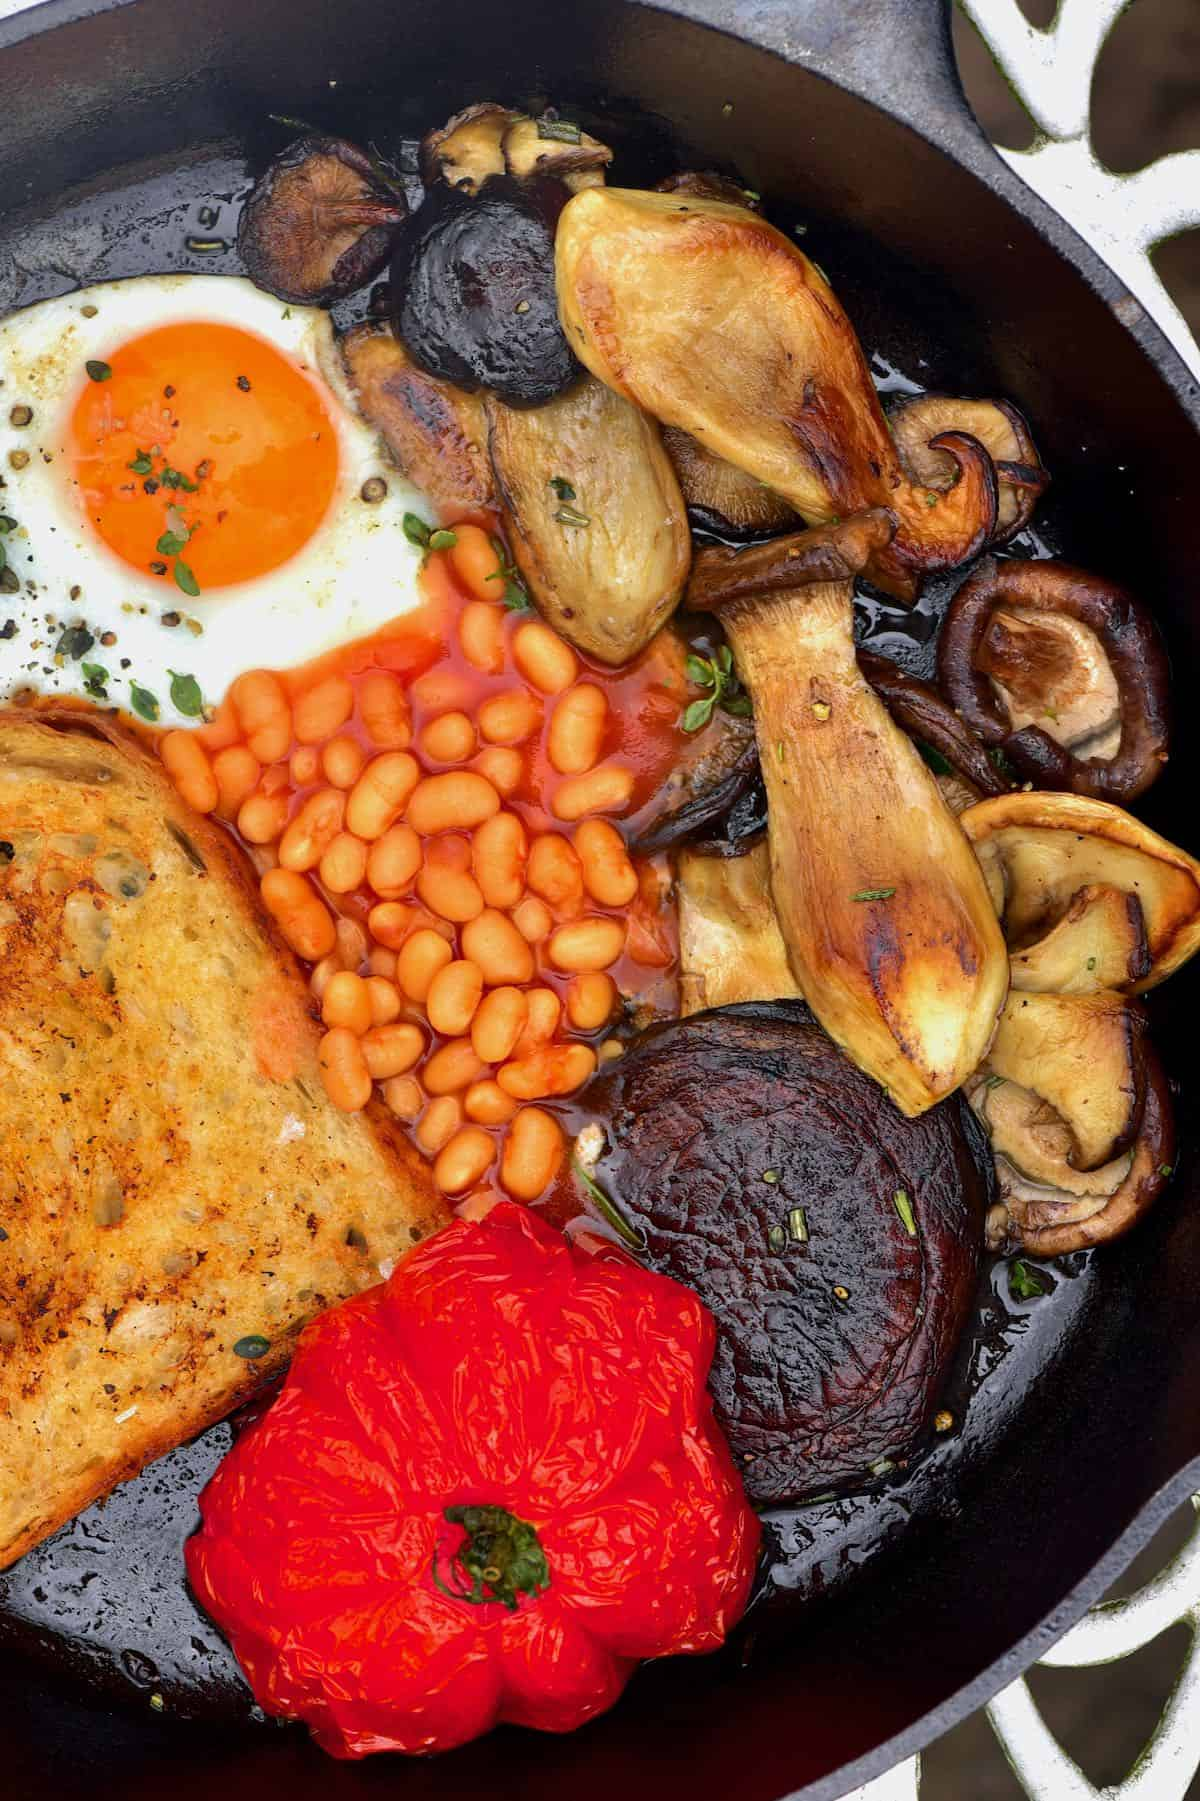 A pan with English breakfast